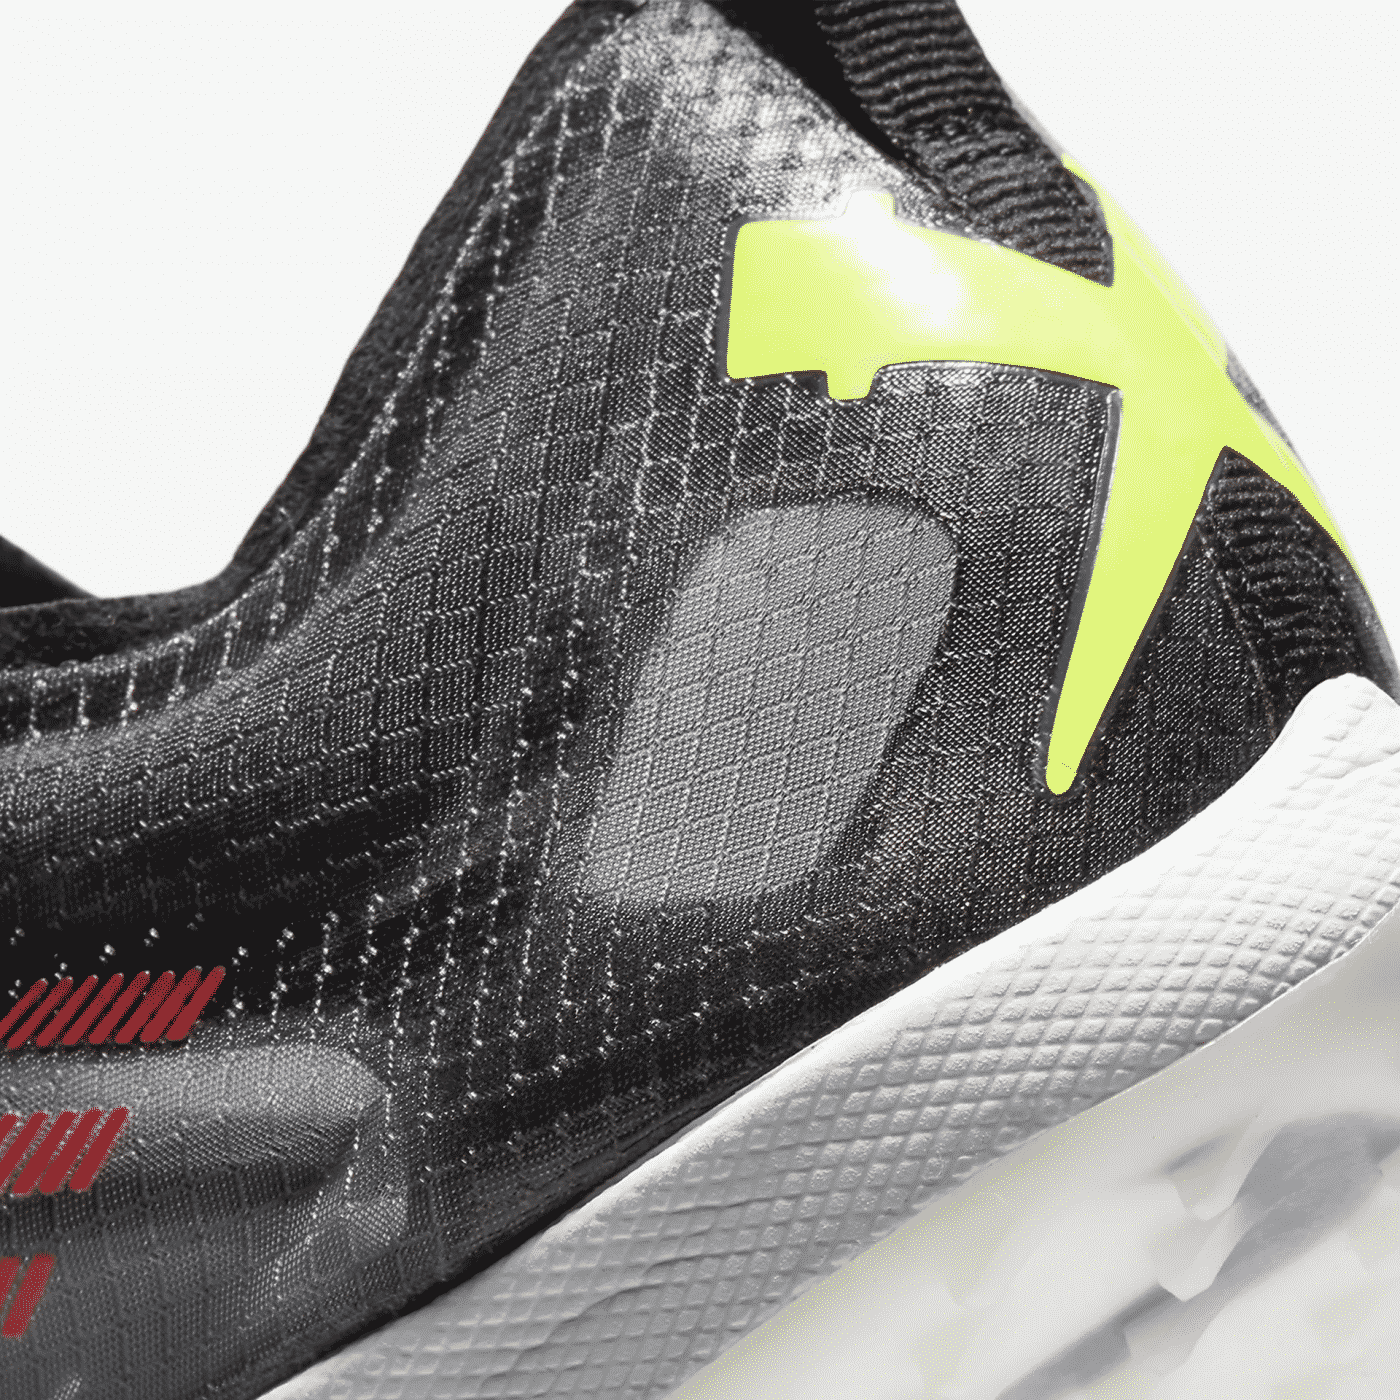 nike_pointes_cross_zoom_victory_XC_5_1